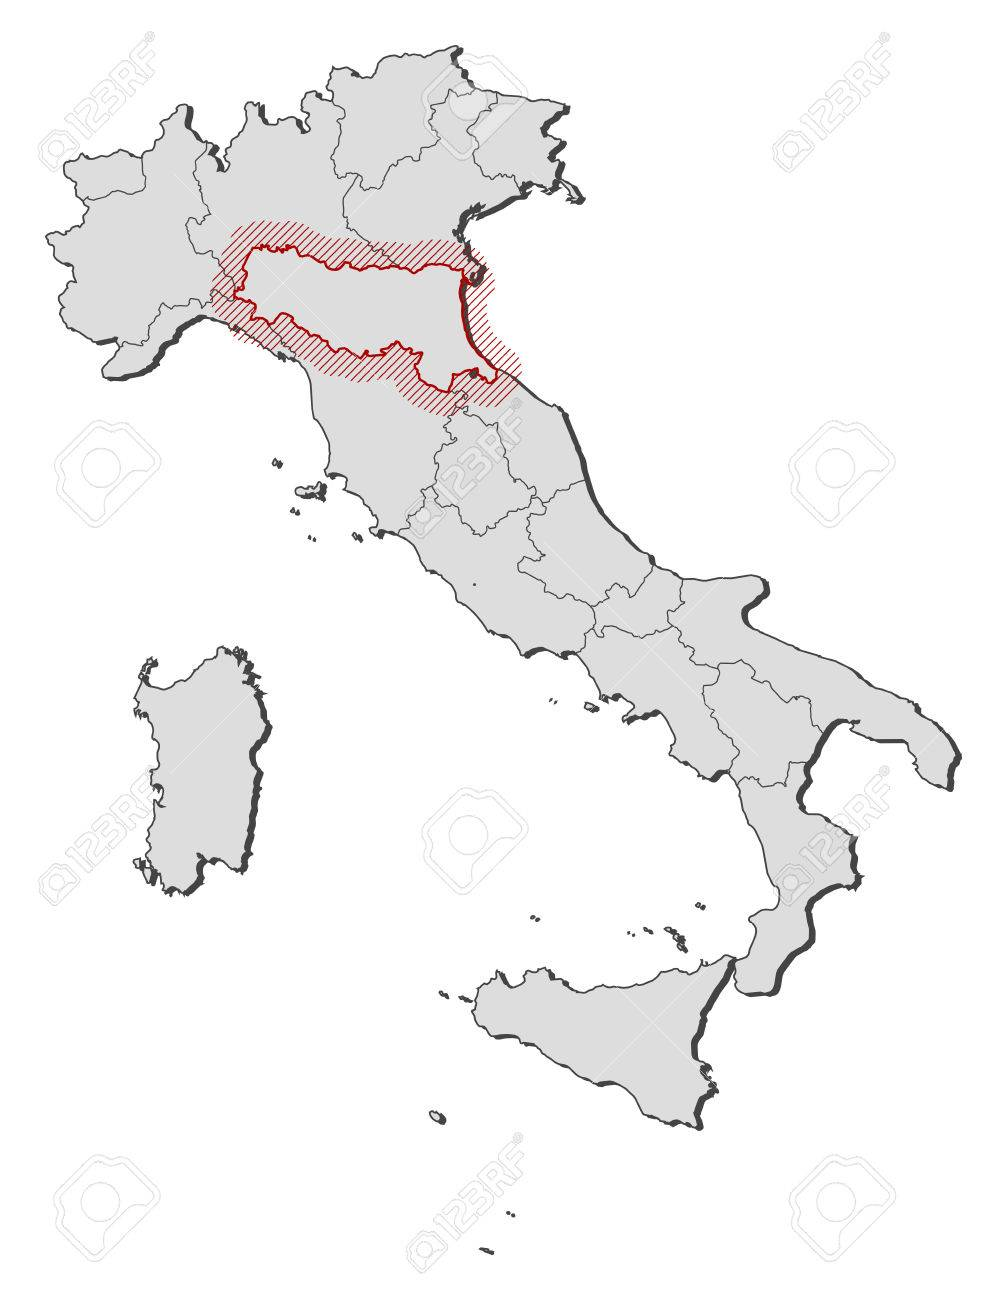 Map Of Italy With The Provinces EmiliaRomagna Is Highlighted